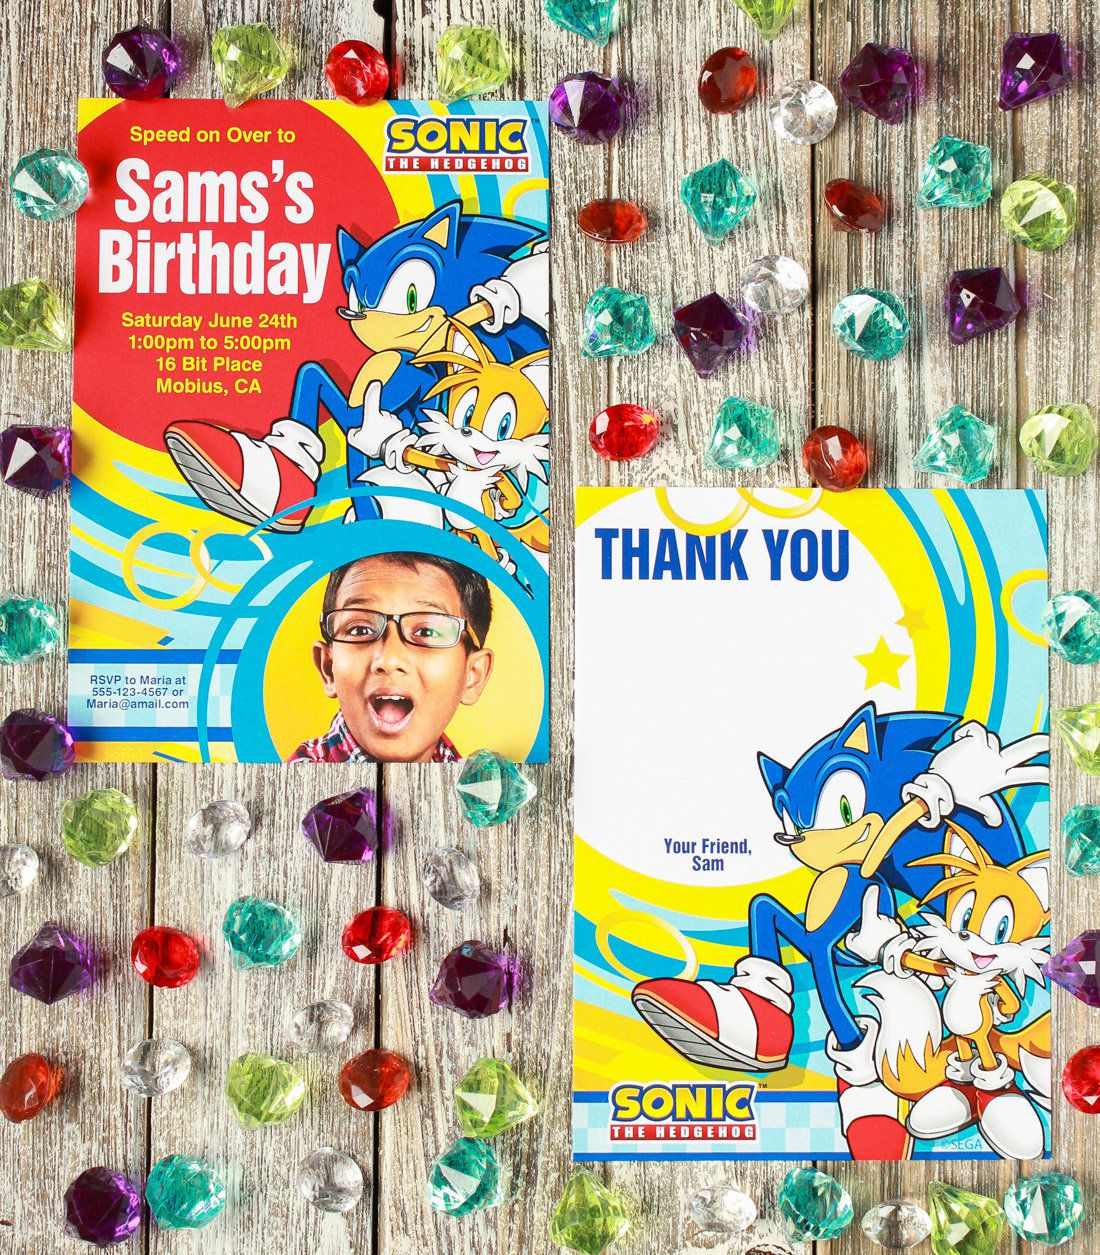 Sonic the Hedgehog Party - Personalized Invitations